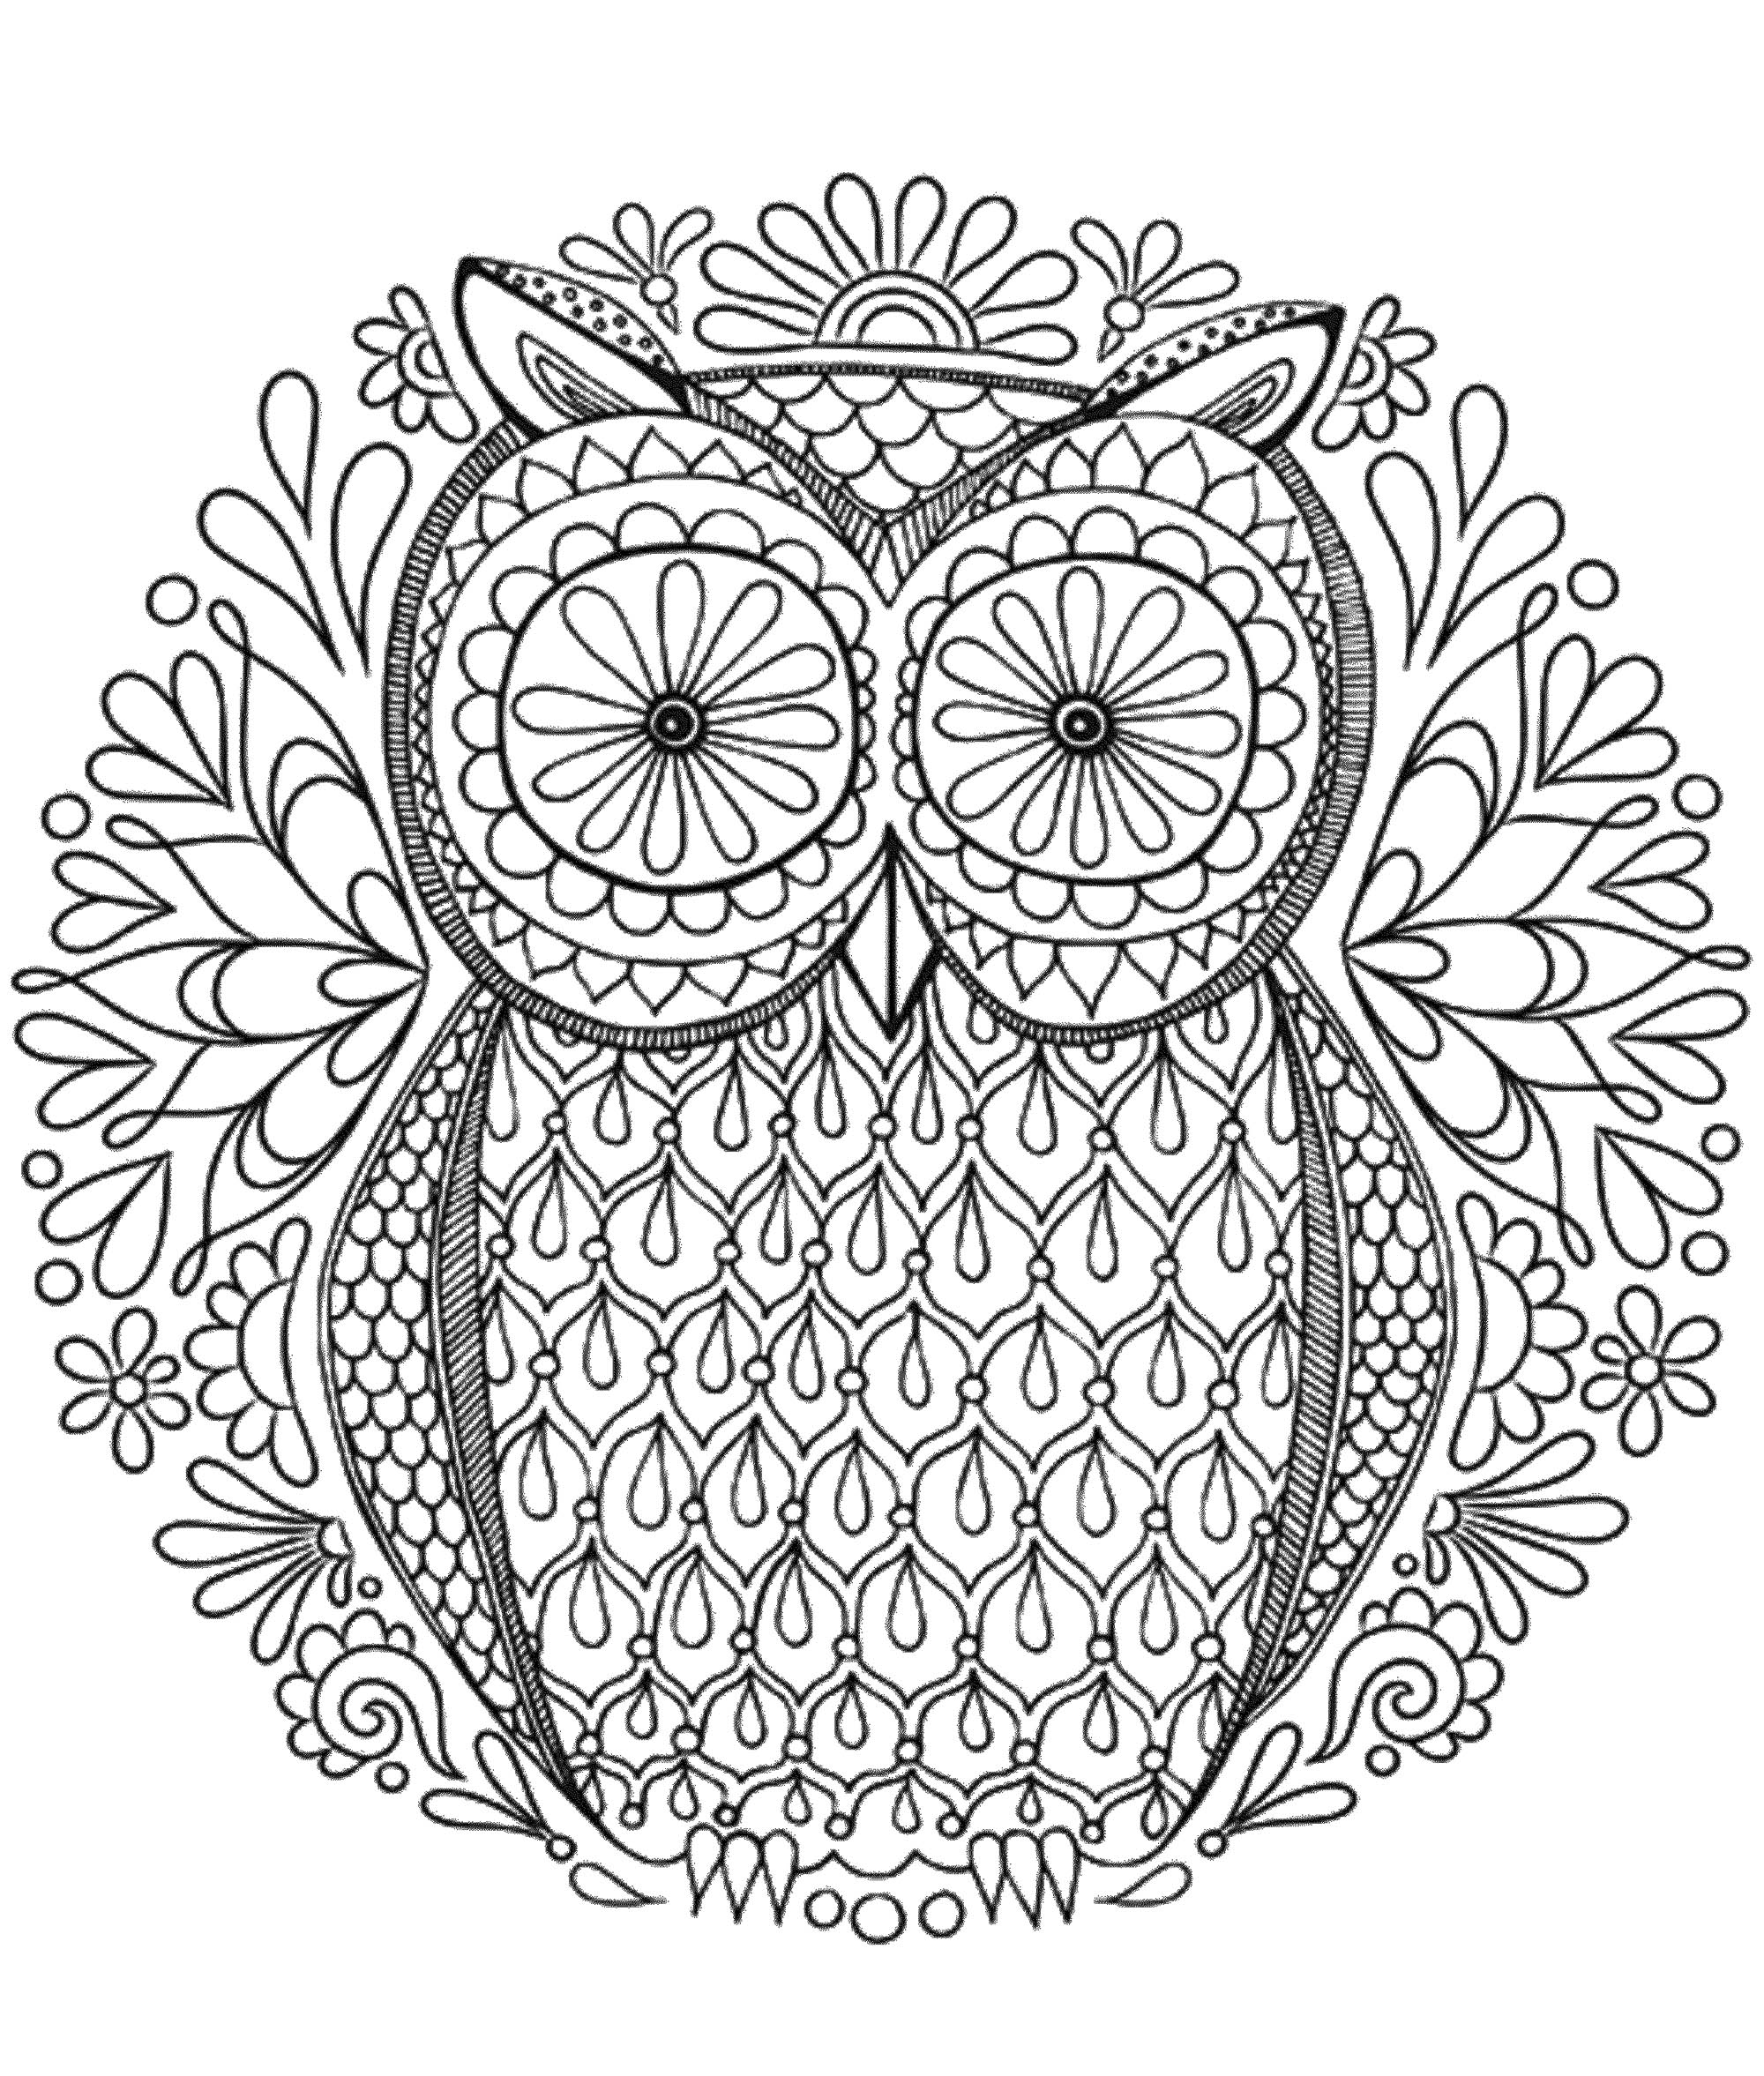 Cool Coloriage Mandala 96 Dans Coloriage Books for Coloriage Mandala